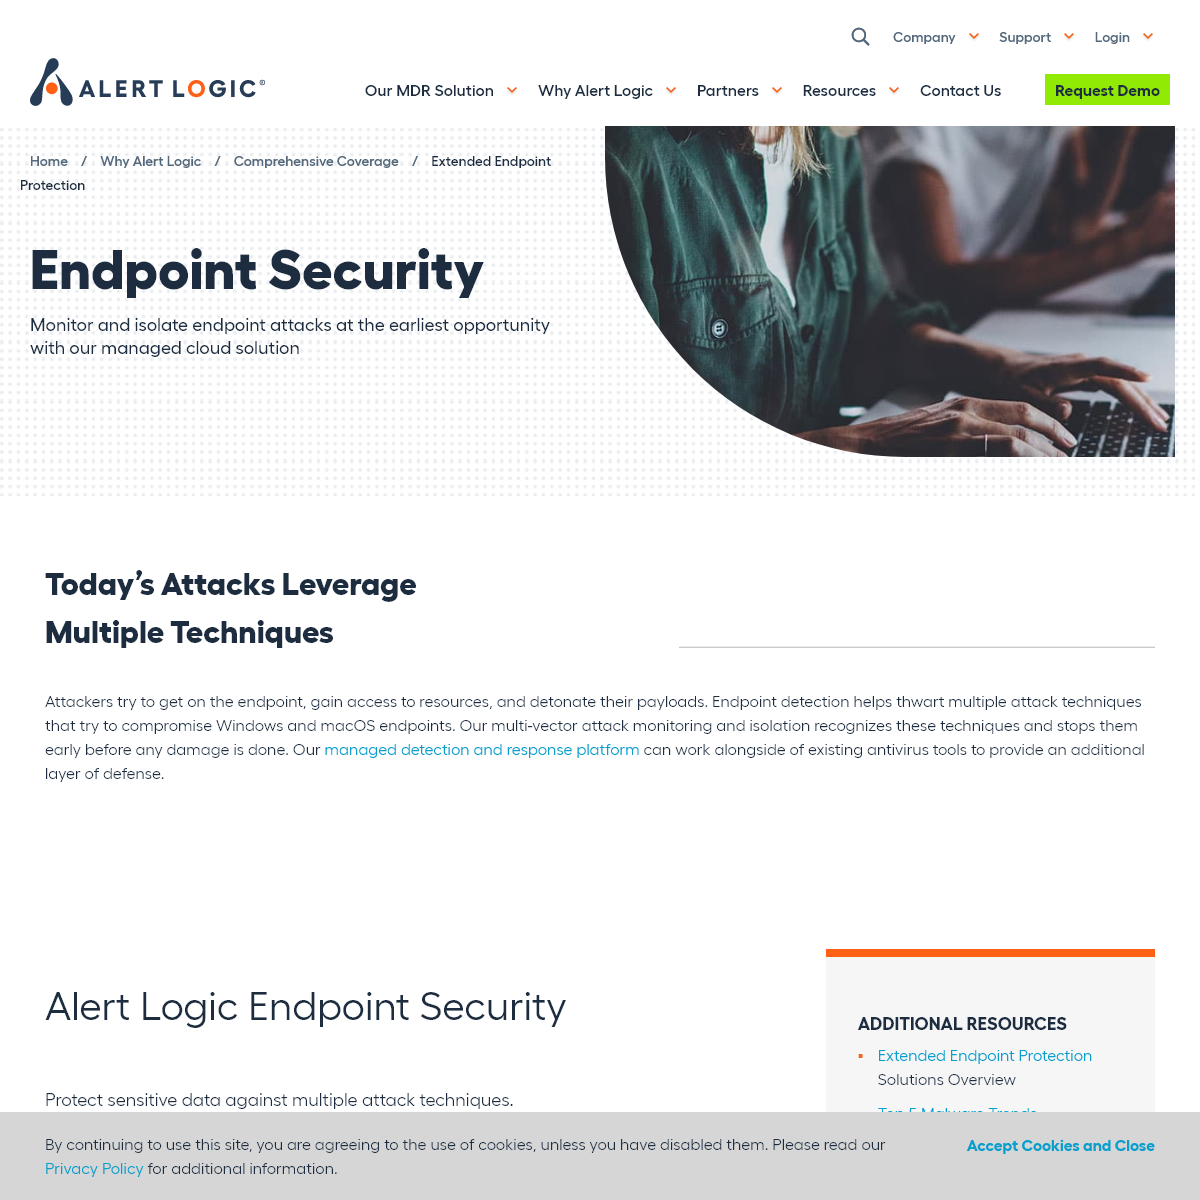 Extended Endpoint Protection - Alert Logic